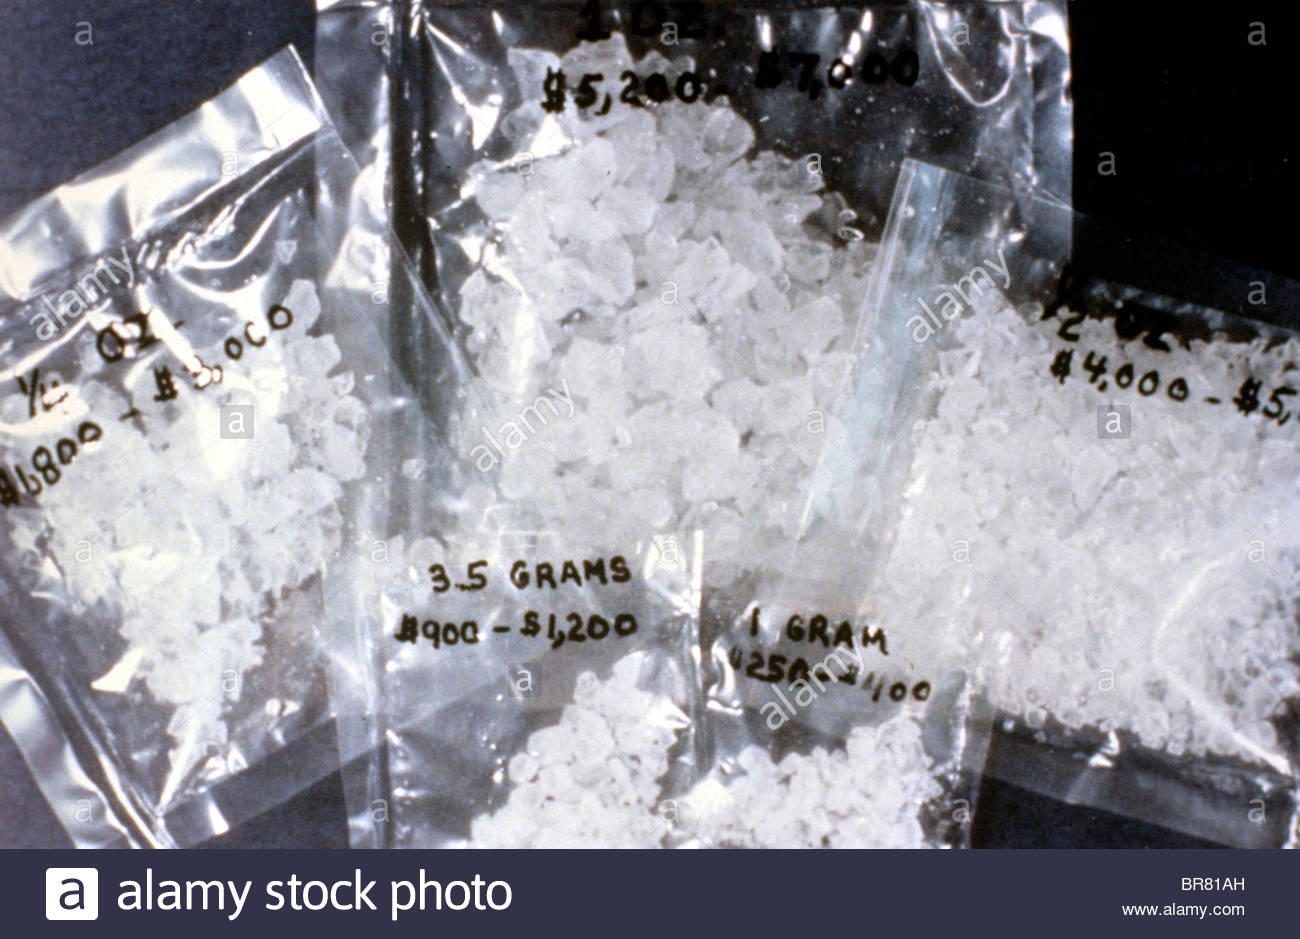 methamphetamine - Bing images